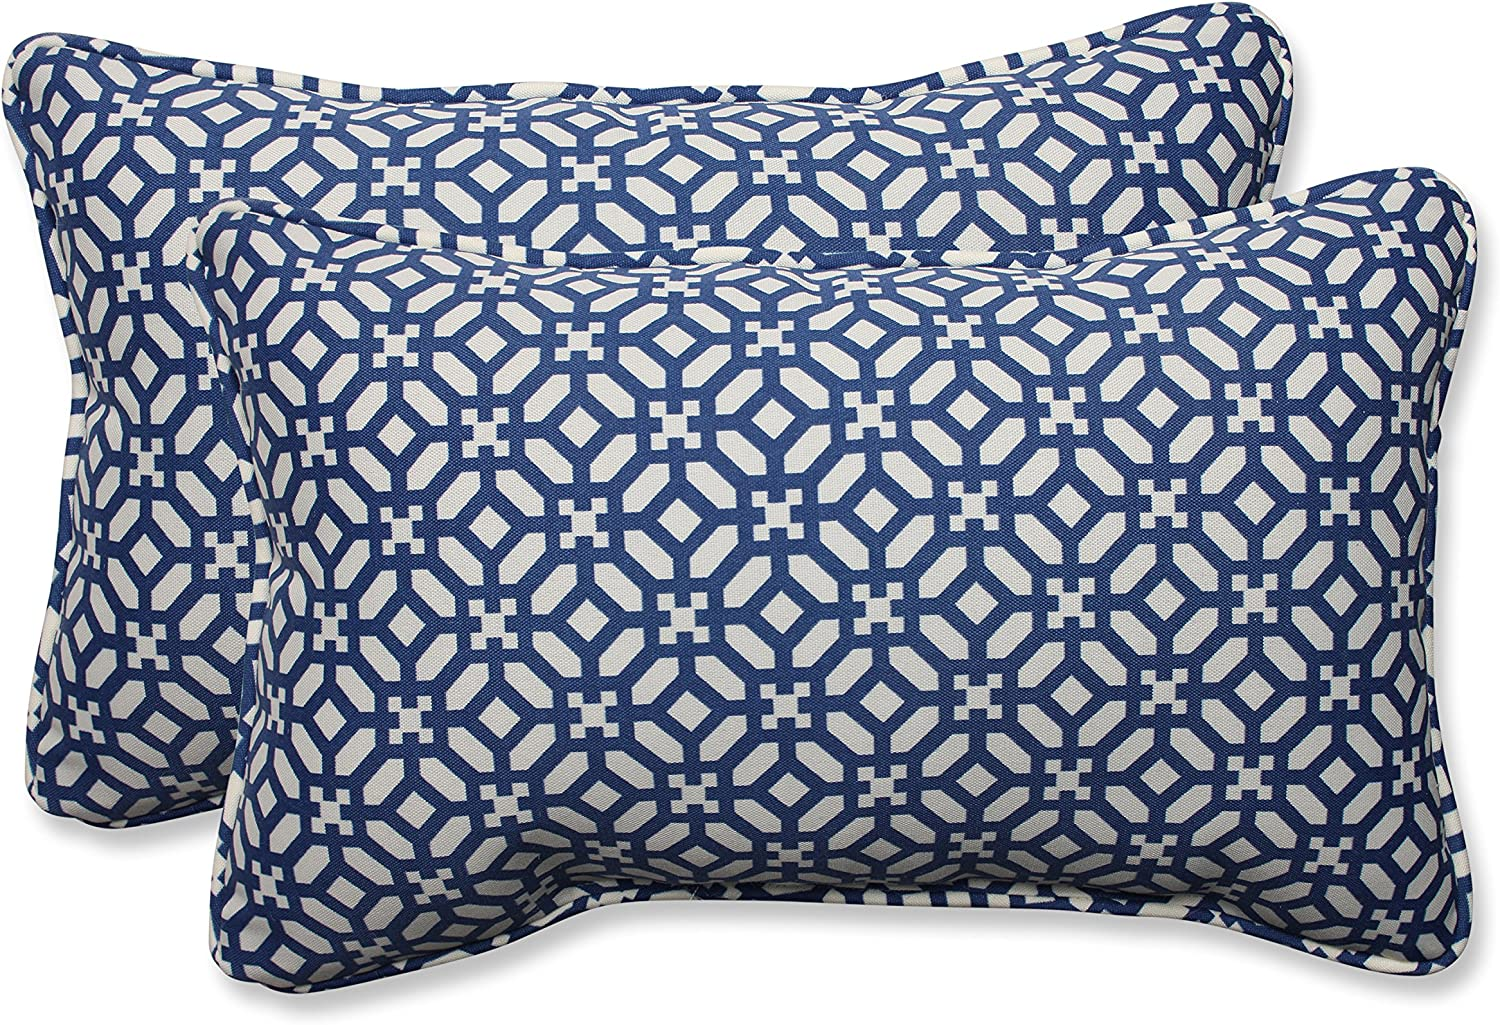 Pillow Perfect Outdoor Indoor Lumbar Pillows 11 5 X 18 5 In The Frame Pebble Sapphire 2 Pack Home Kitchen